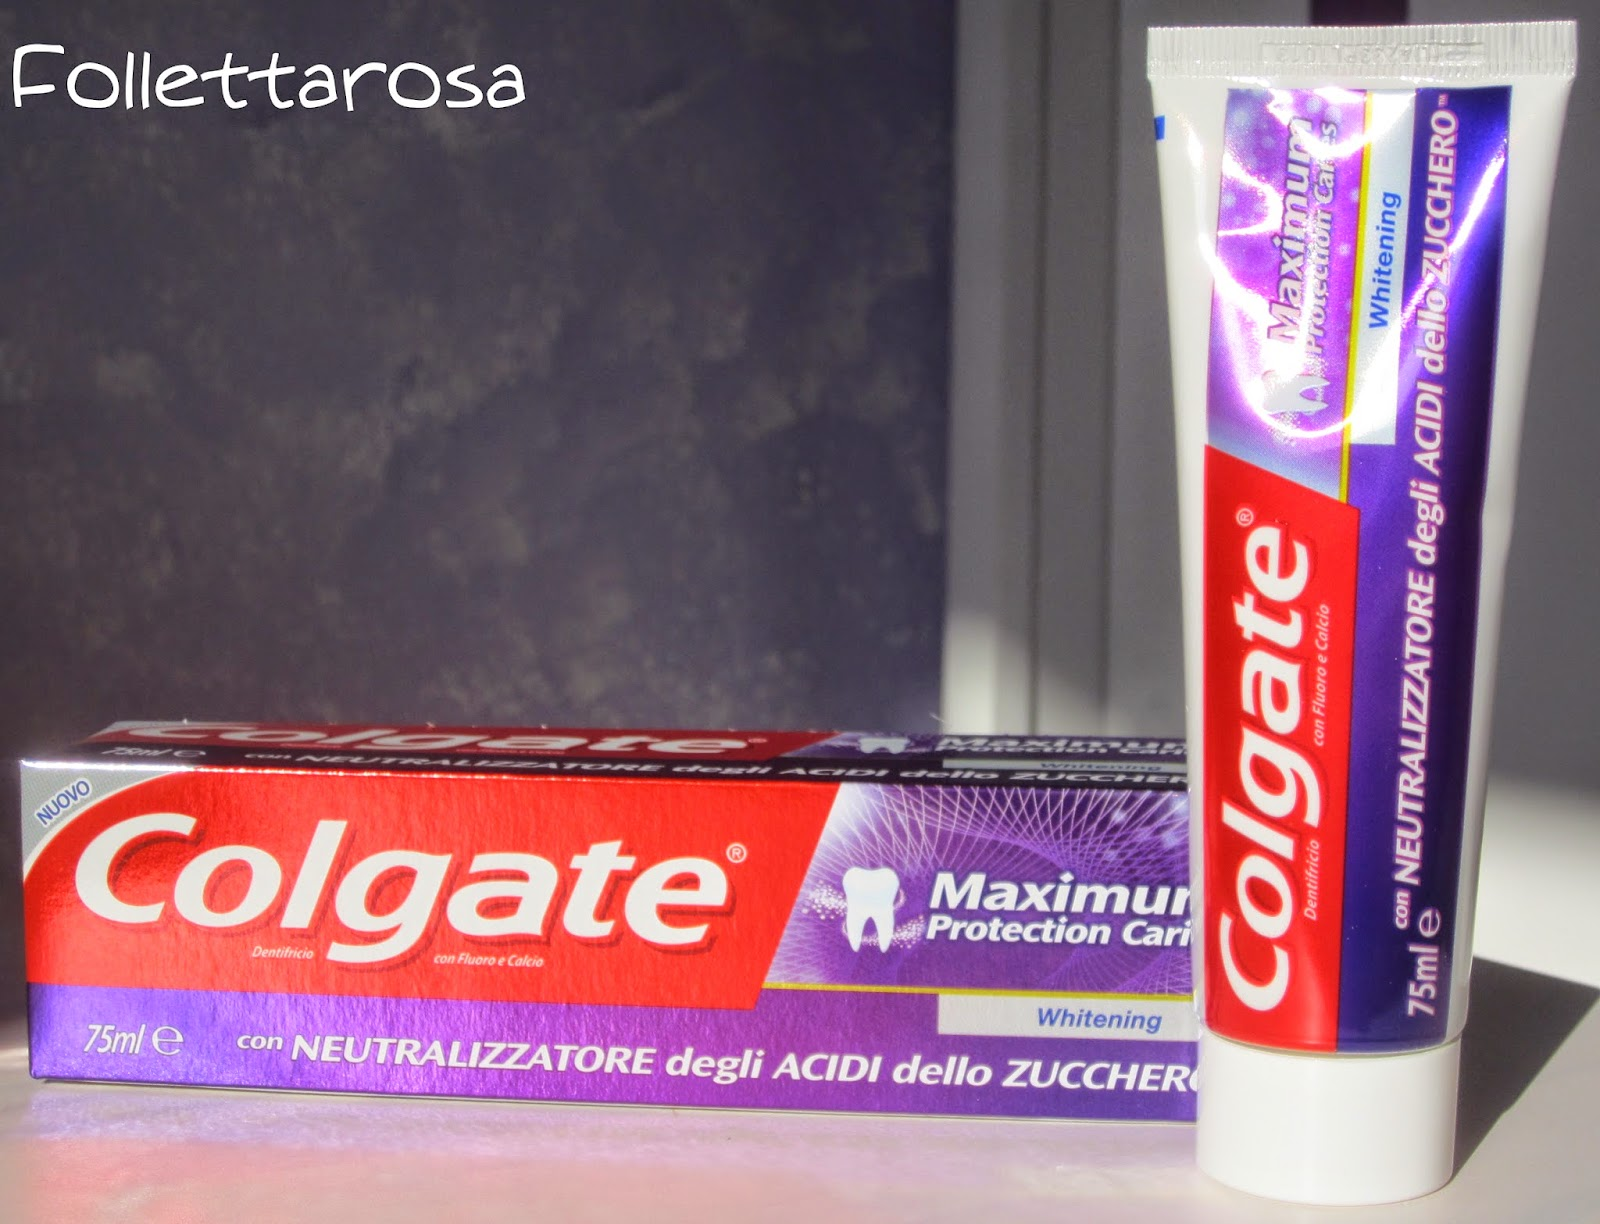 Maximum protection caries Colgate whitening